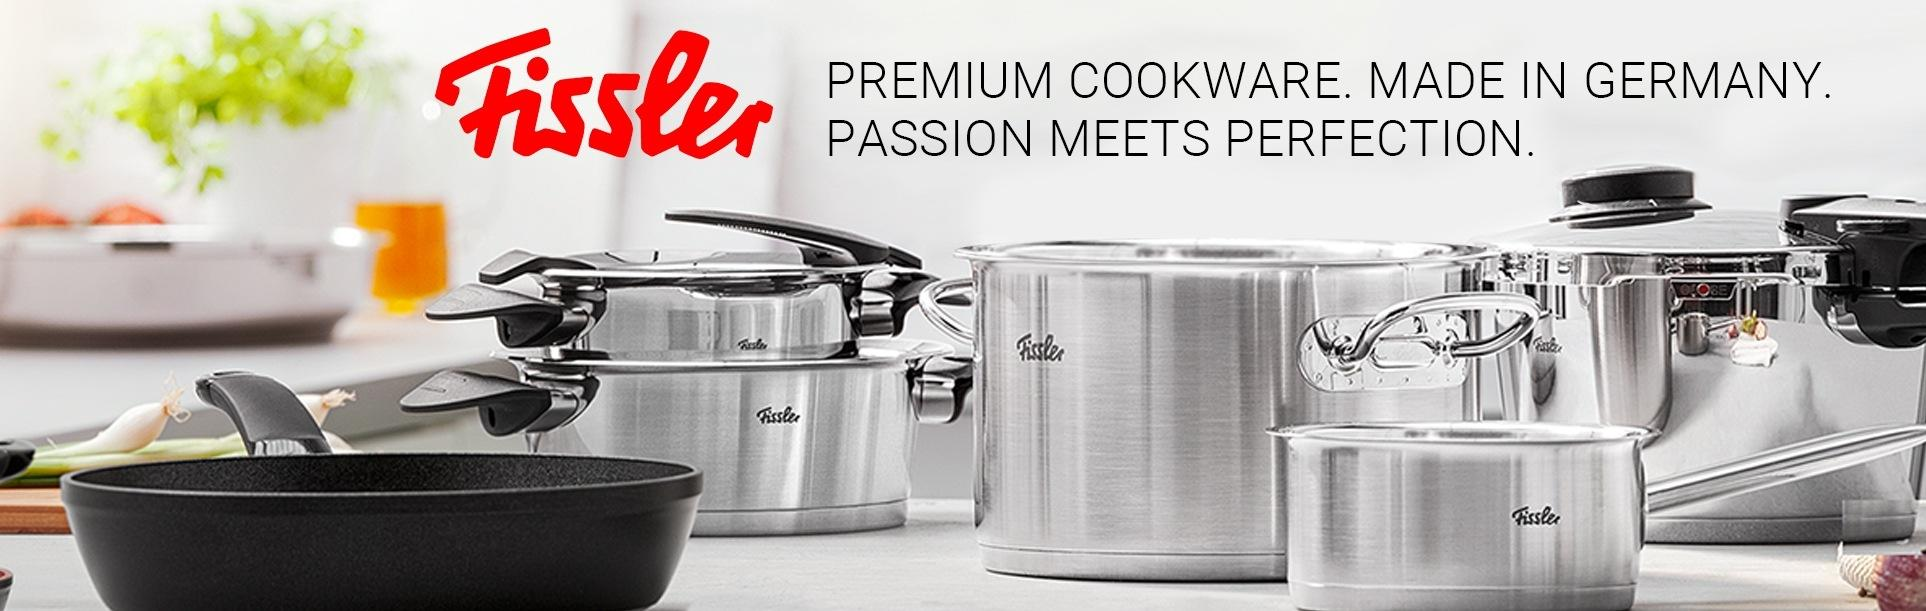 Fissler lifestyle products slide 6